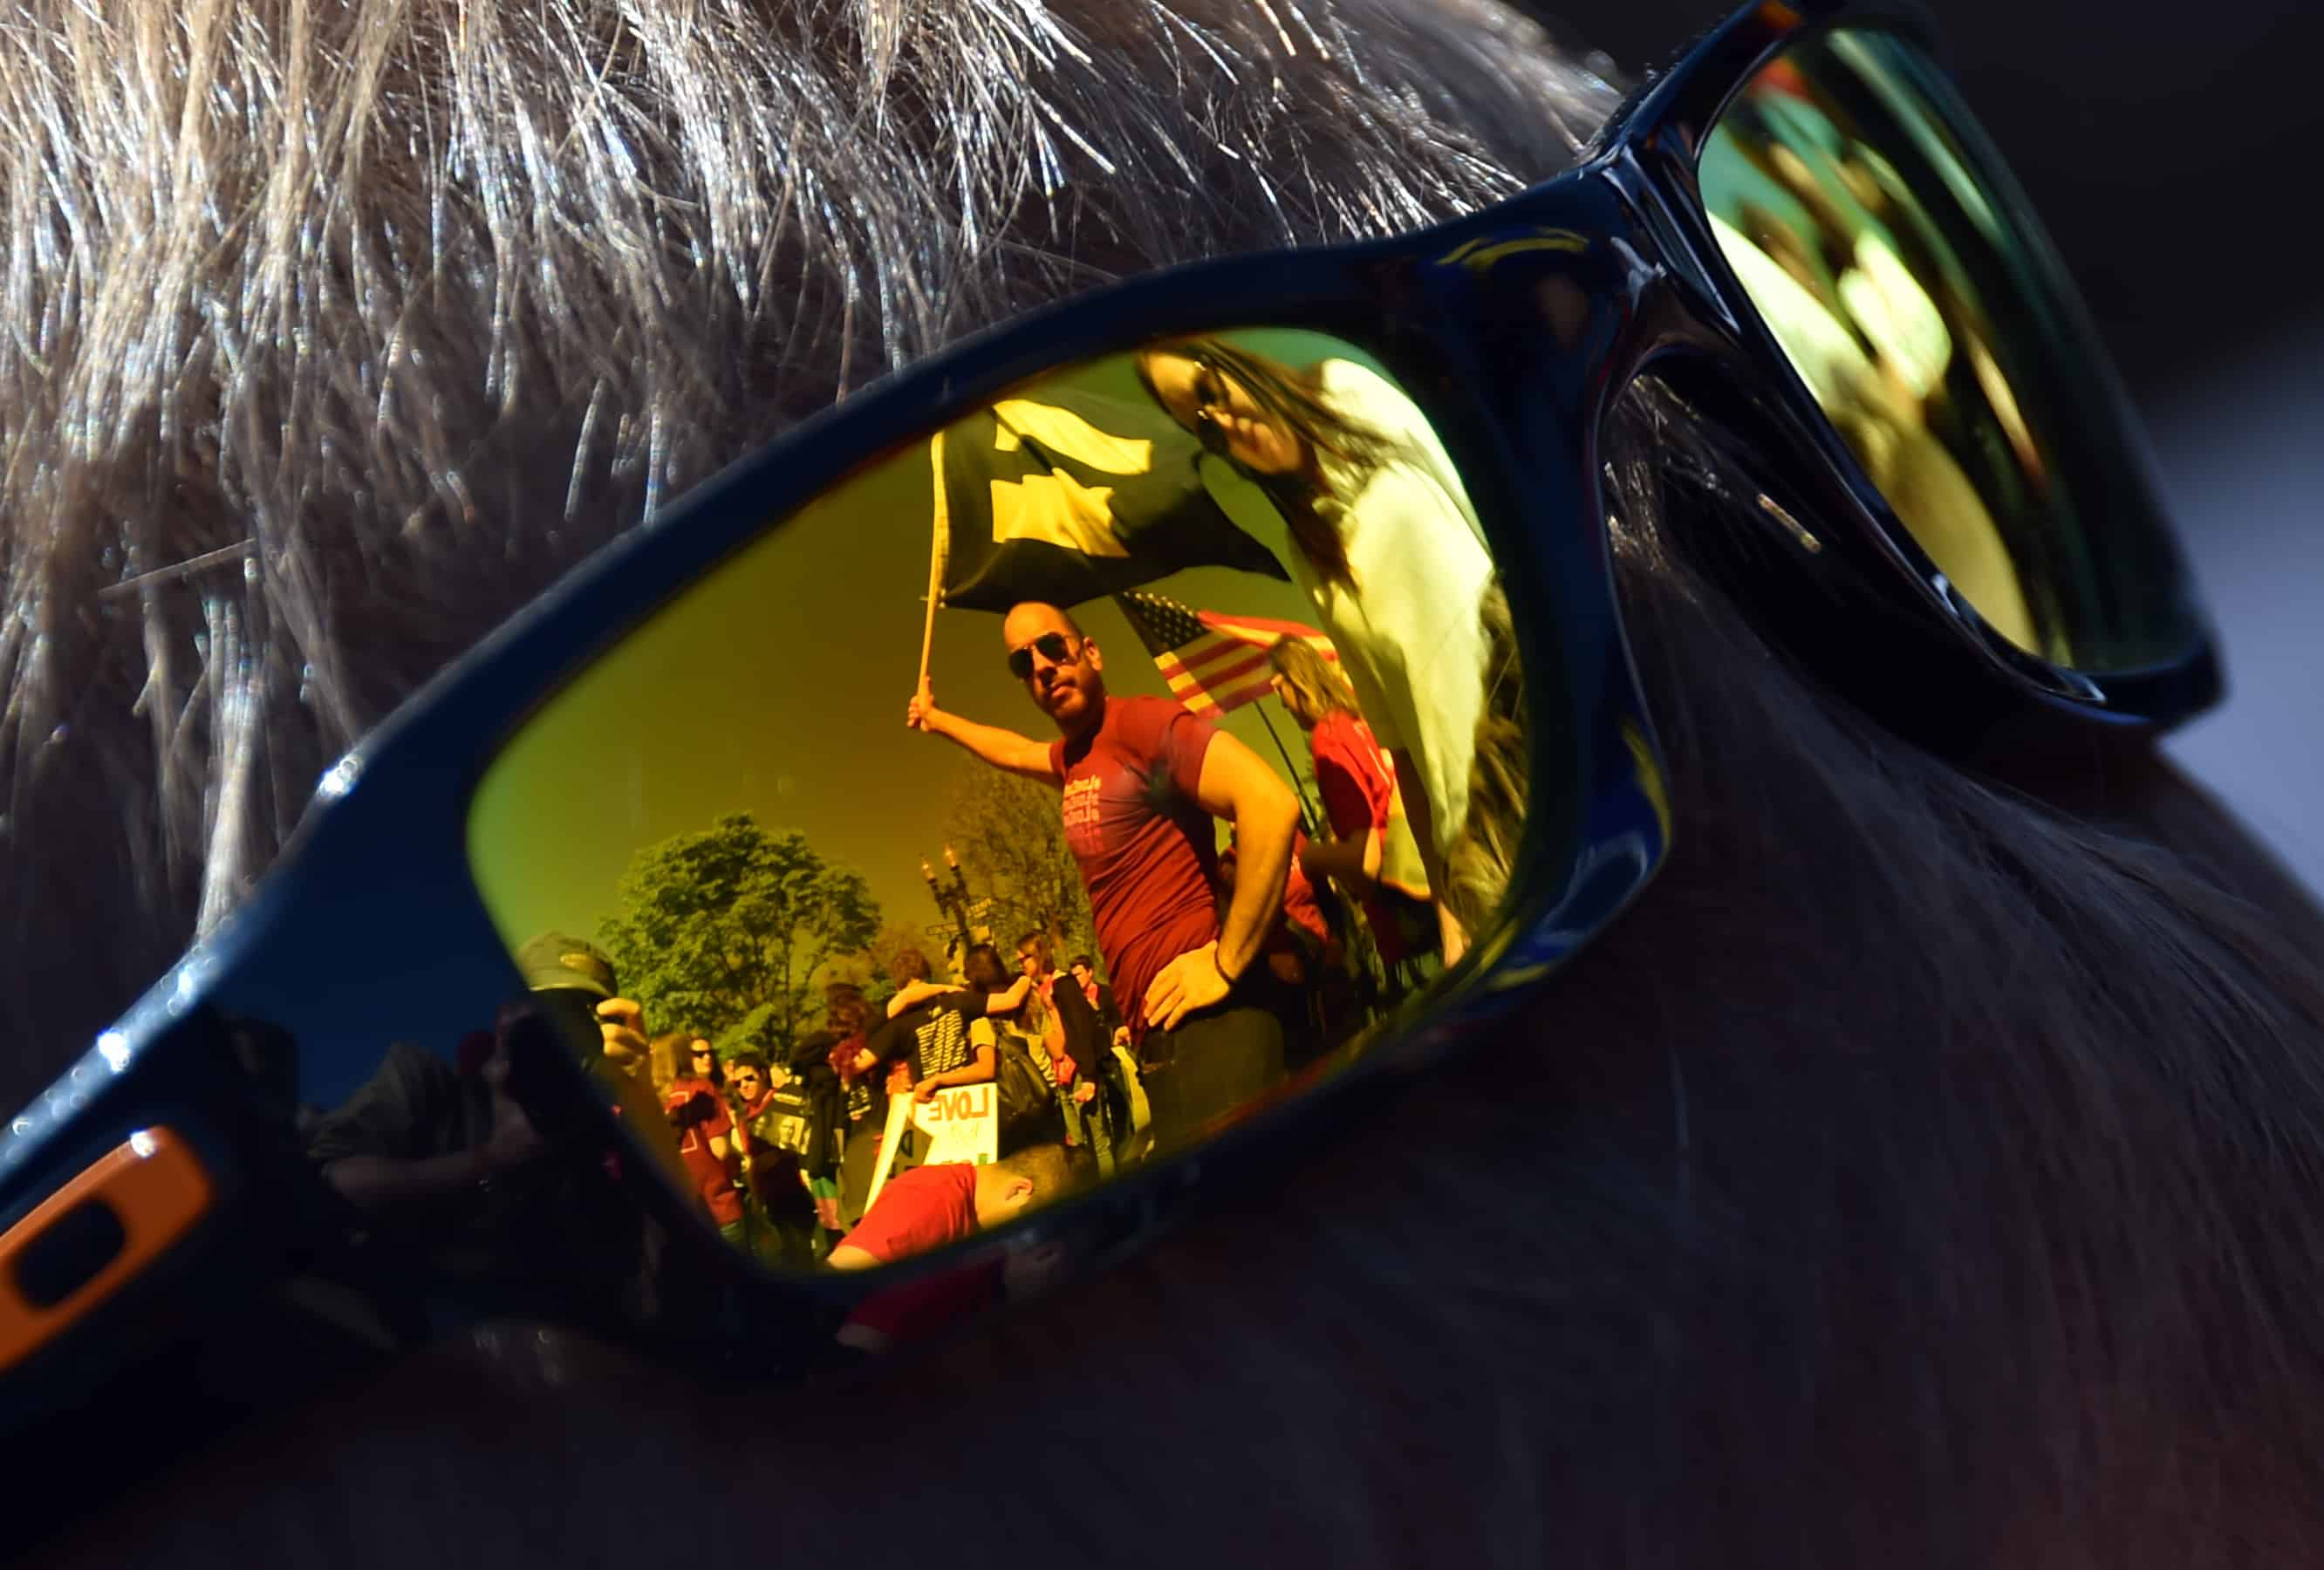 Sunglasses reflect supporters of same-sex marriages standing outside the U.S. Supreme Court as they wait for its decision on whether gay couples have a constitutional right to wed, April 28, 2014 in Washington, D.C.